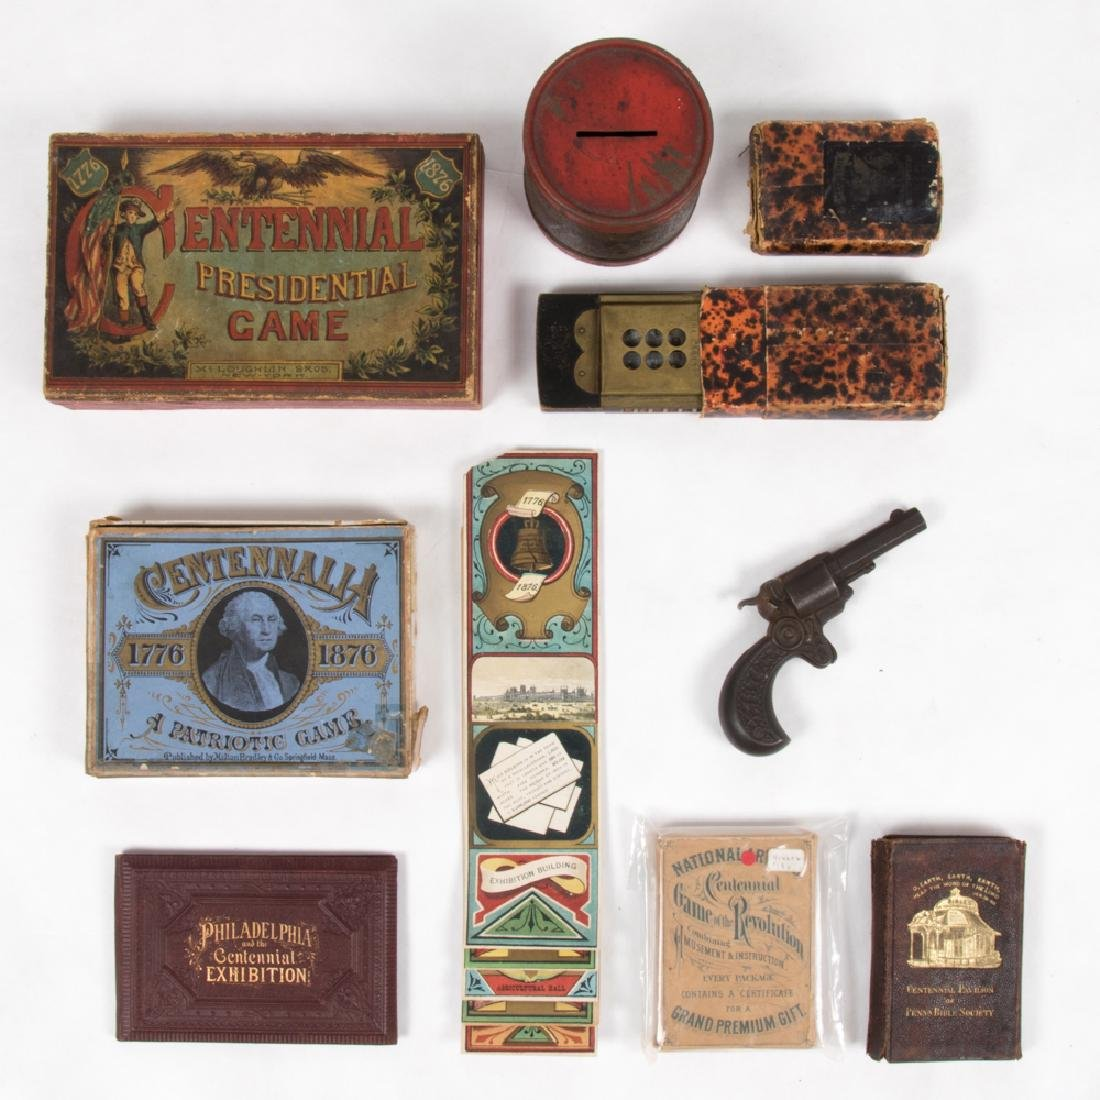 A Miscellaneous Collection of Souvenirs and Games from